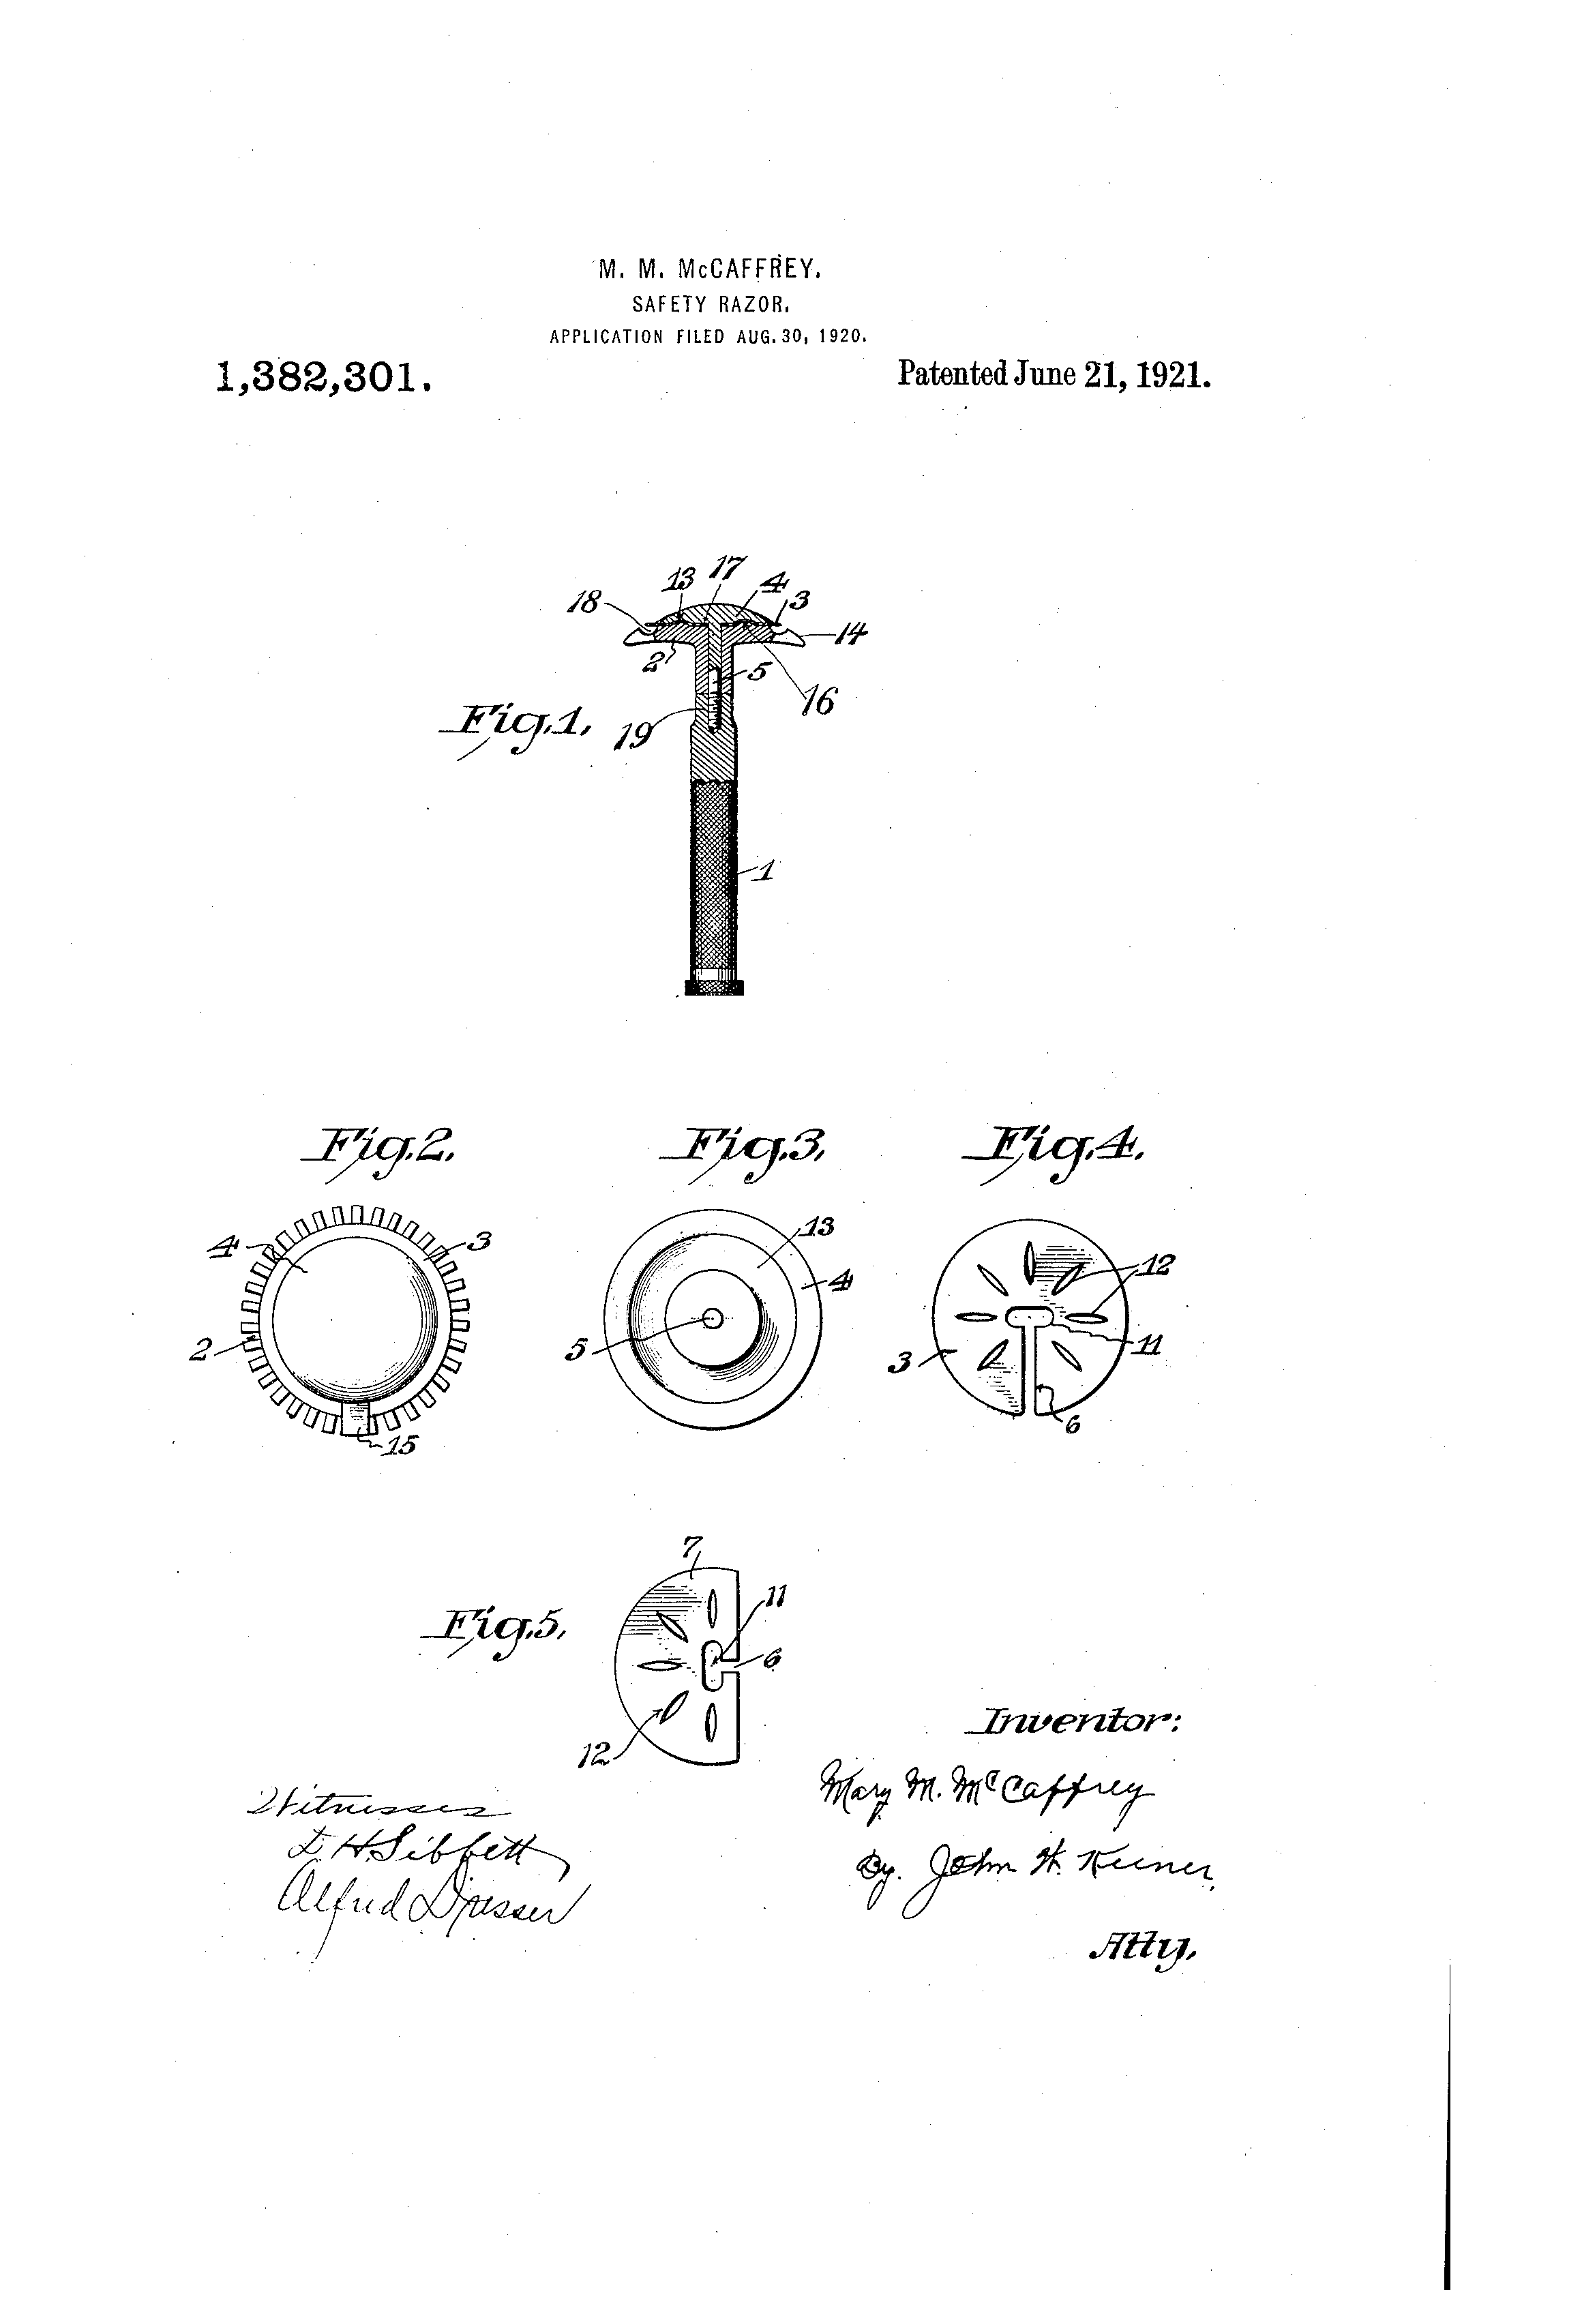 [Image: US1382301-drawings-page-1.png]